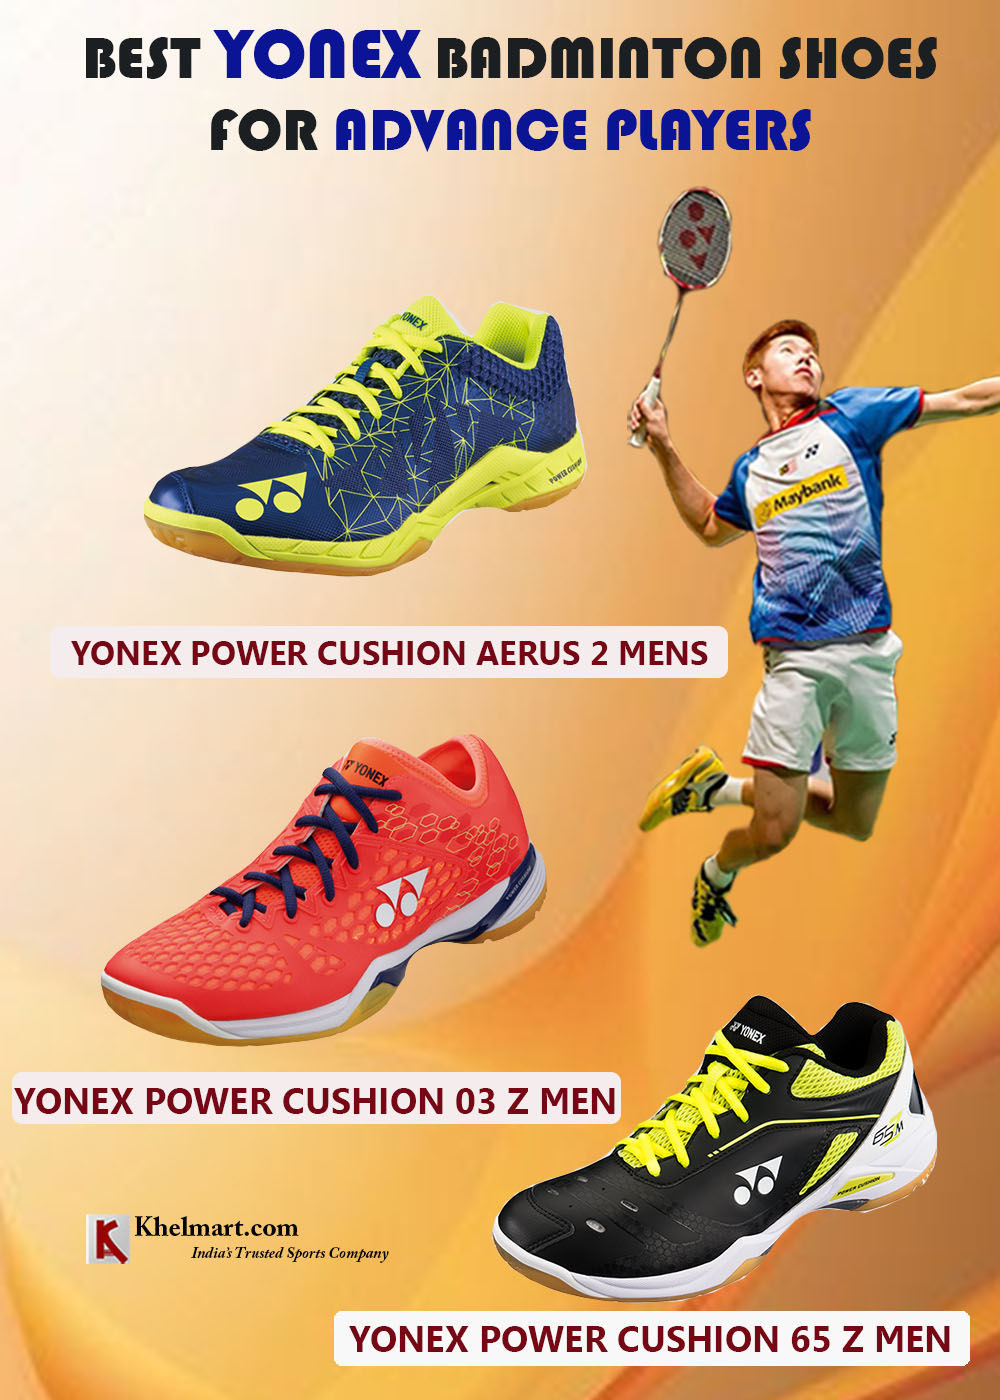 98ec019431b Best YONEX Badminton Shoes For Advance Players | Khelmart.org | It's ...